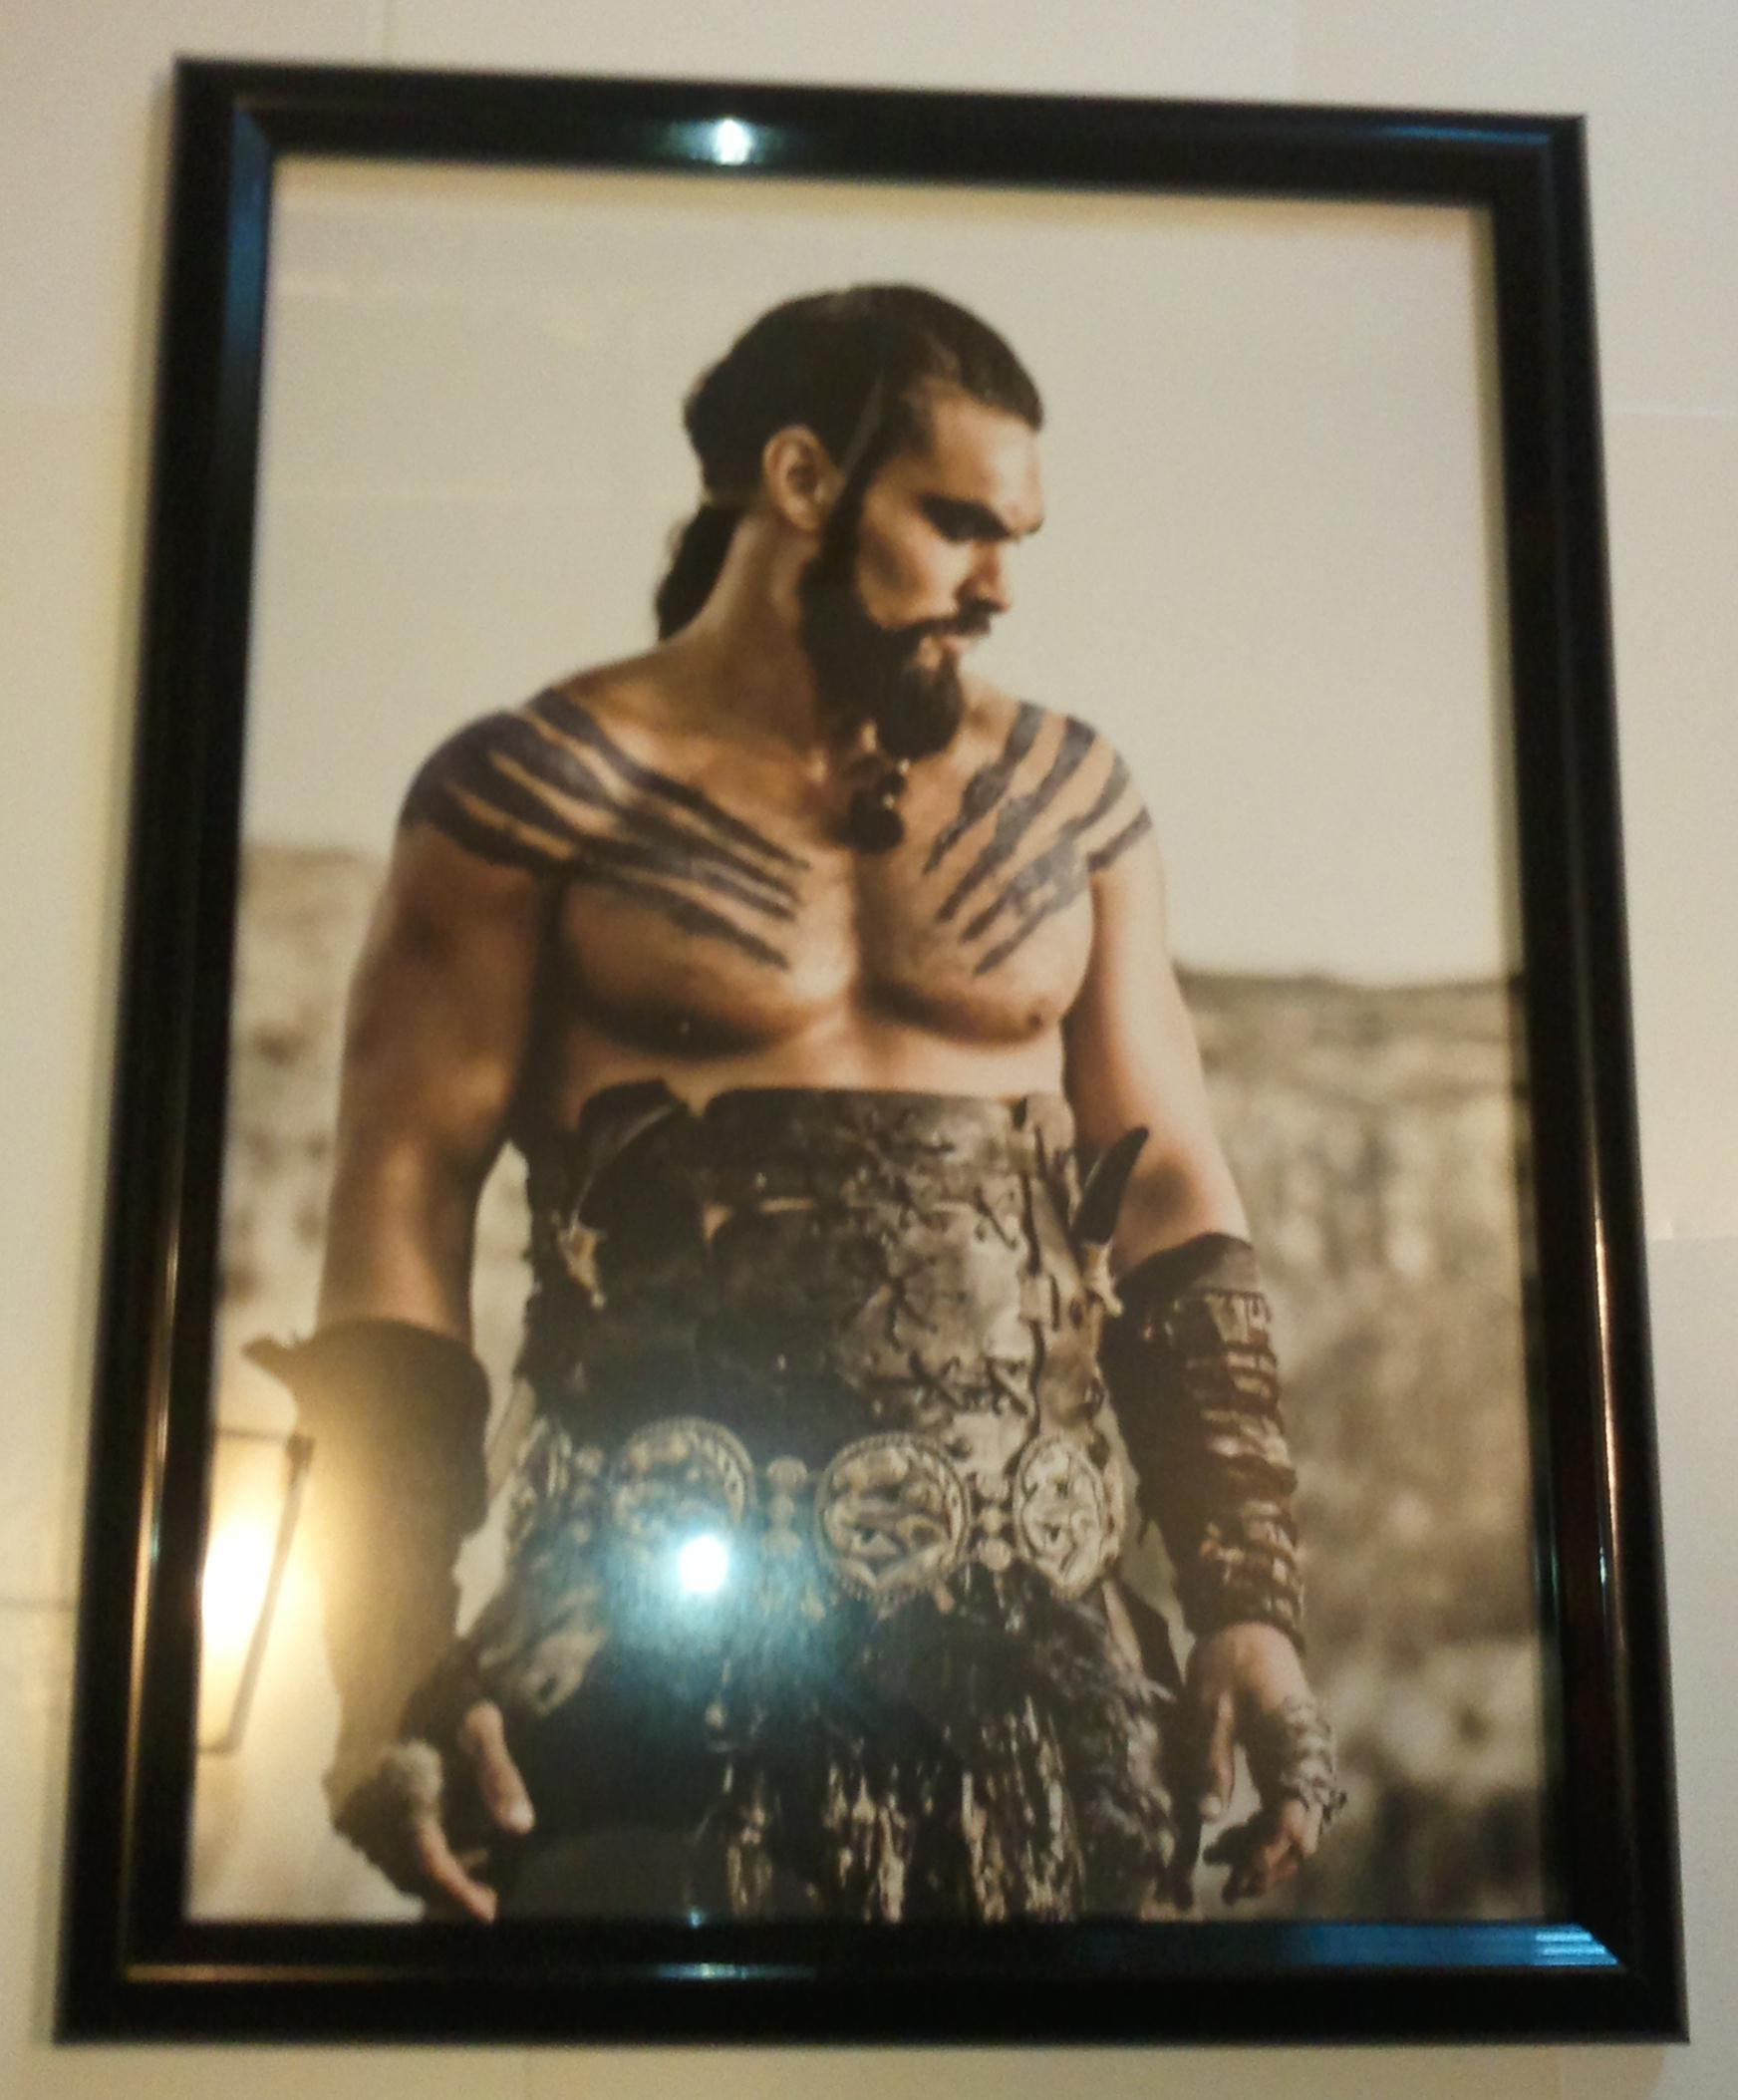 Game Of Thrones Poster # 2 FRAMED Khal Drogo Jason Momoa